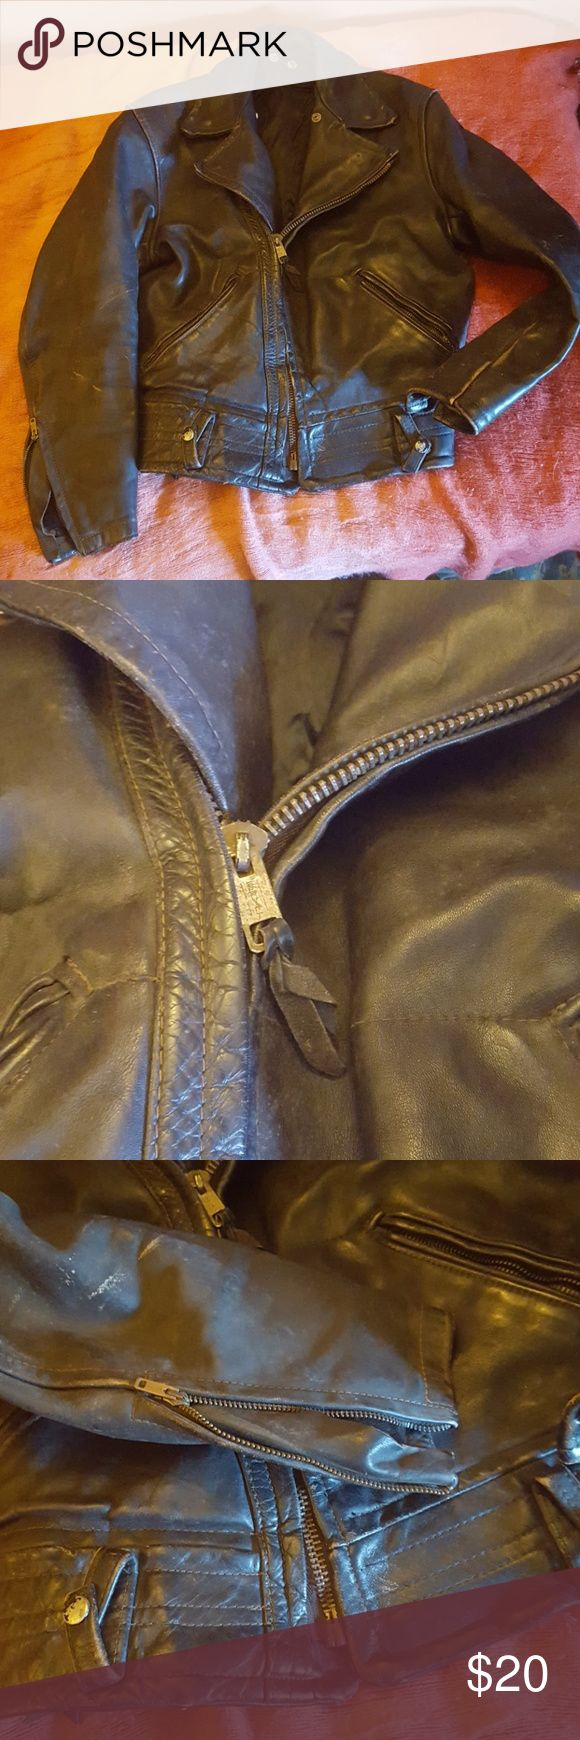 """SUPER Vintage Leather Moto Jacket *Has damage* Ok. This thing is OOOLD. Like, super old. It was old BEFORE I had it forever kinda old. I'm thinking 50's era. The leather is distressed. It smells like an old car (always has). The zippers and snaps are still working and functional. The leather is still sturdy and awesome. The DAMAGE is an approximate 6"""" split in the seam on the right sleeve. An easy fix if you have the right kind of needle. Size Medium. 20"""" pit to pit, 16"""" waist lying flat…"""